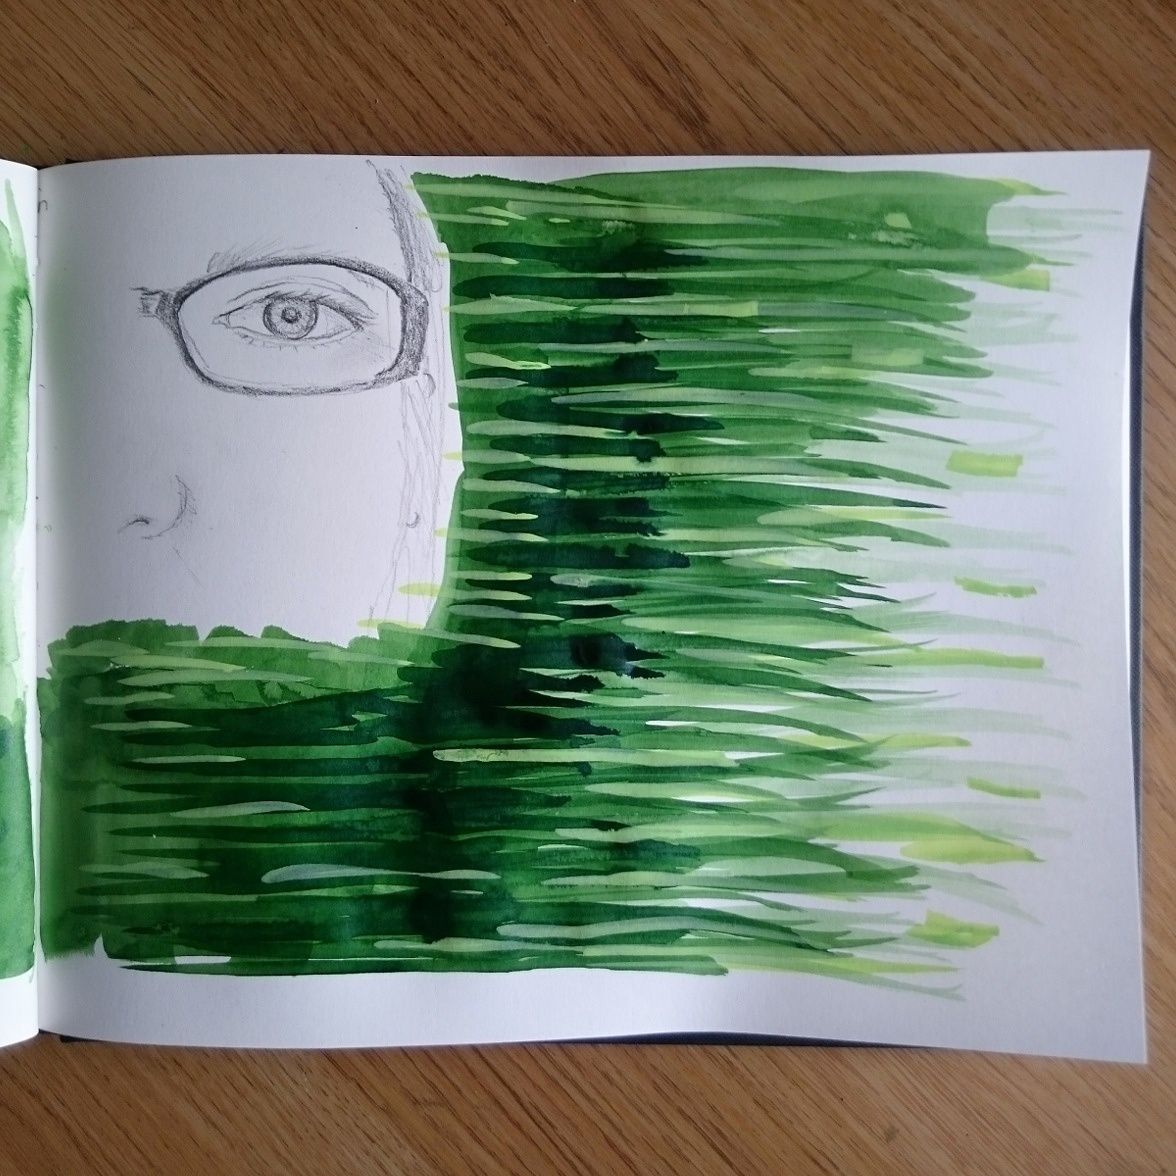 Day 14 28 Drawings Later Sketchbook Challenge by Jo Degenhart